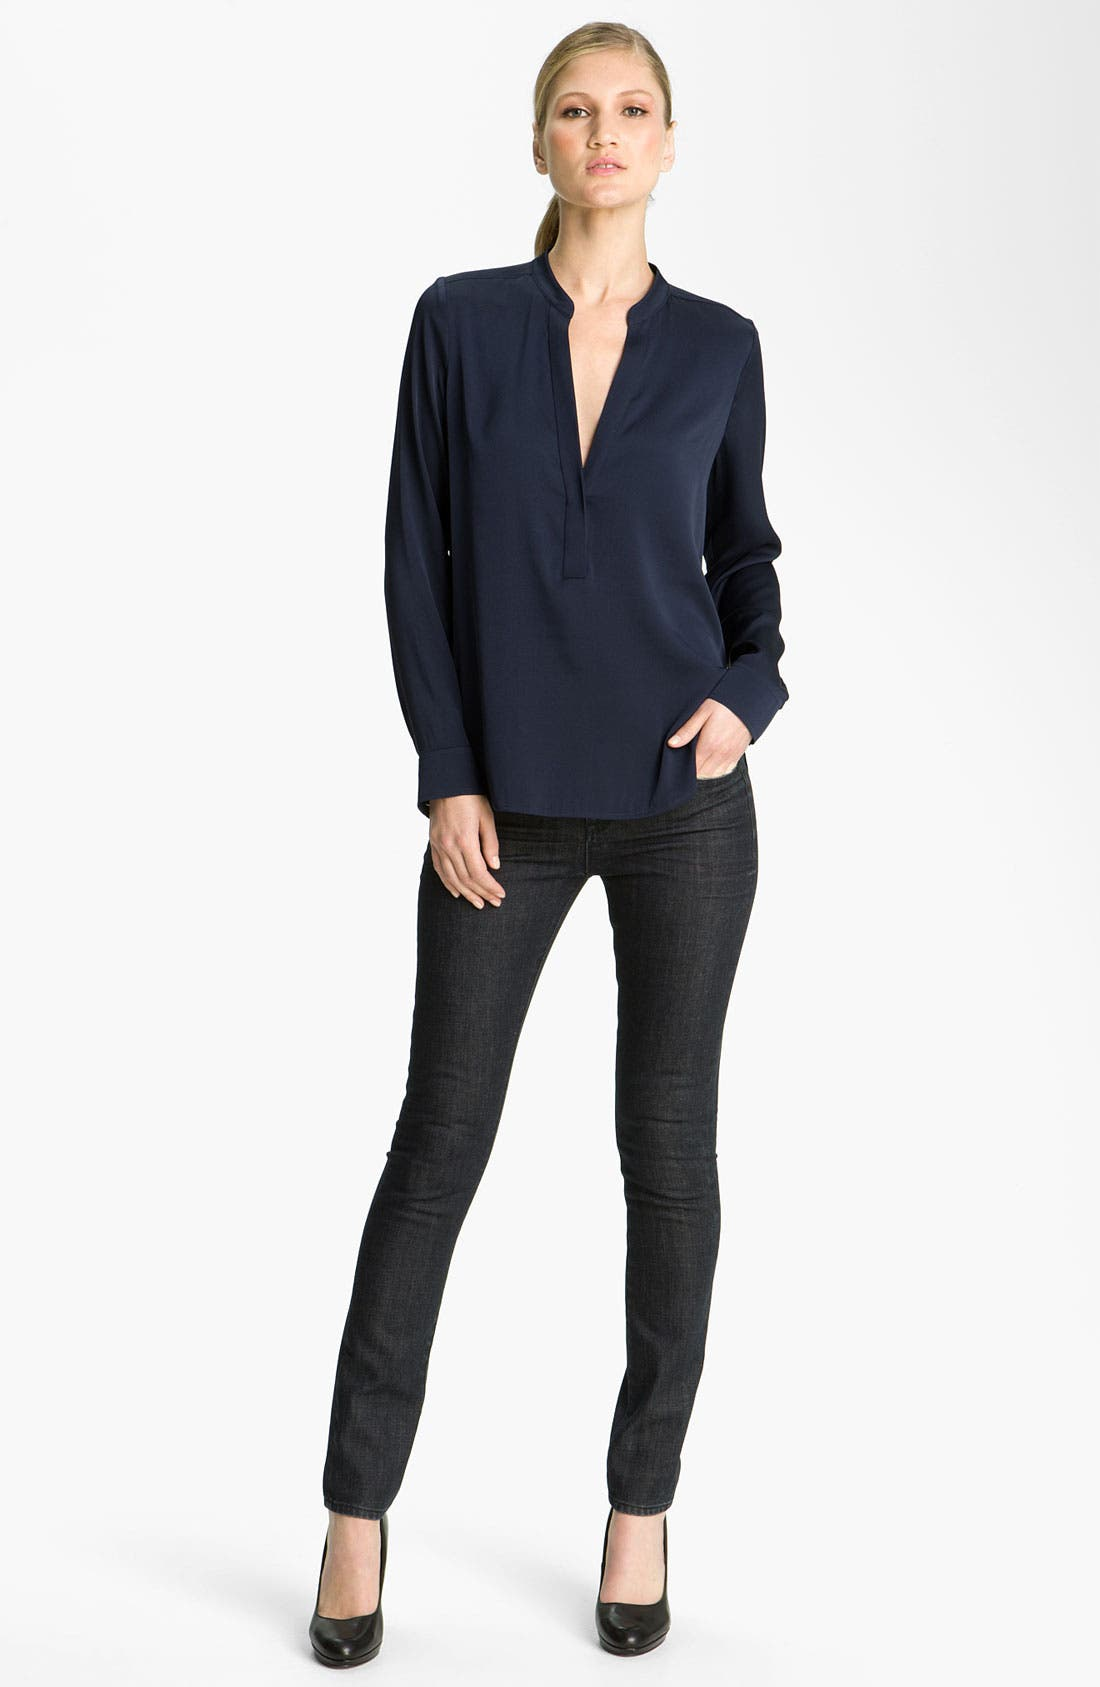 Alternate Image 1 Selected - Vince Silk Blouse & Skinny Jeans